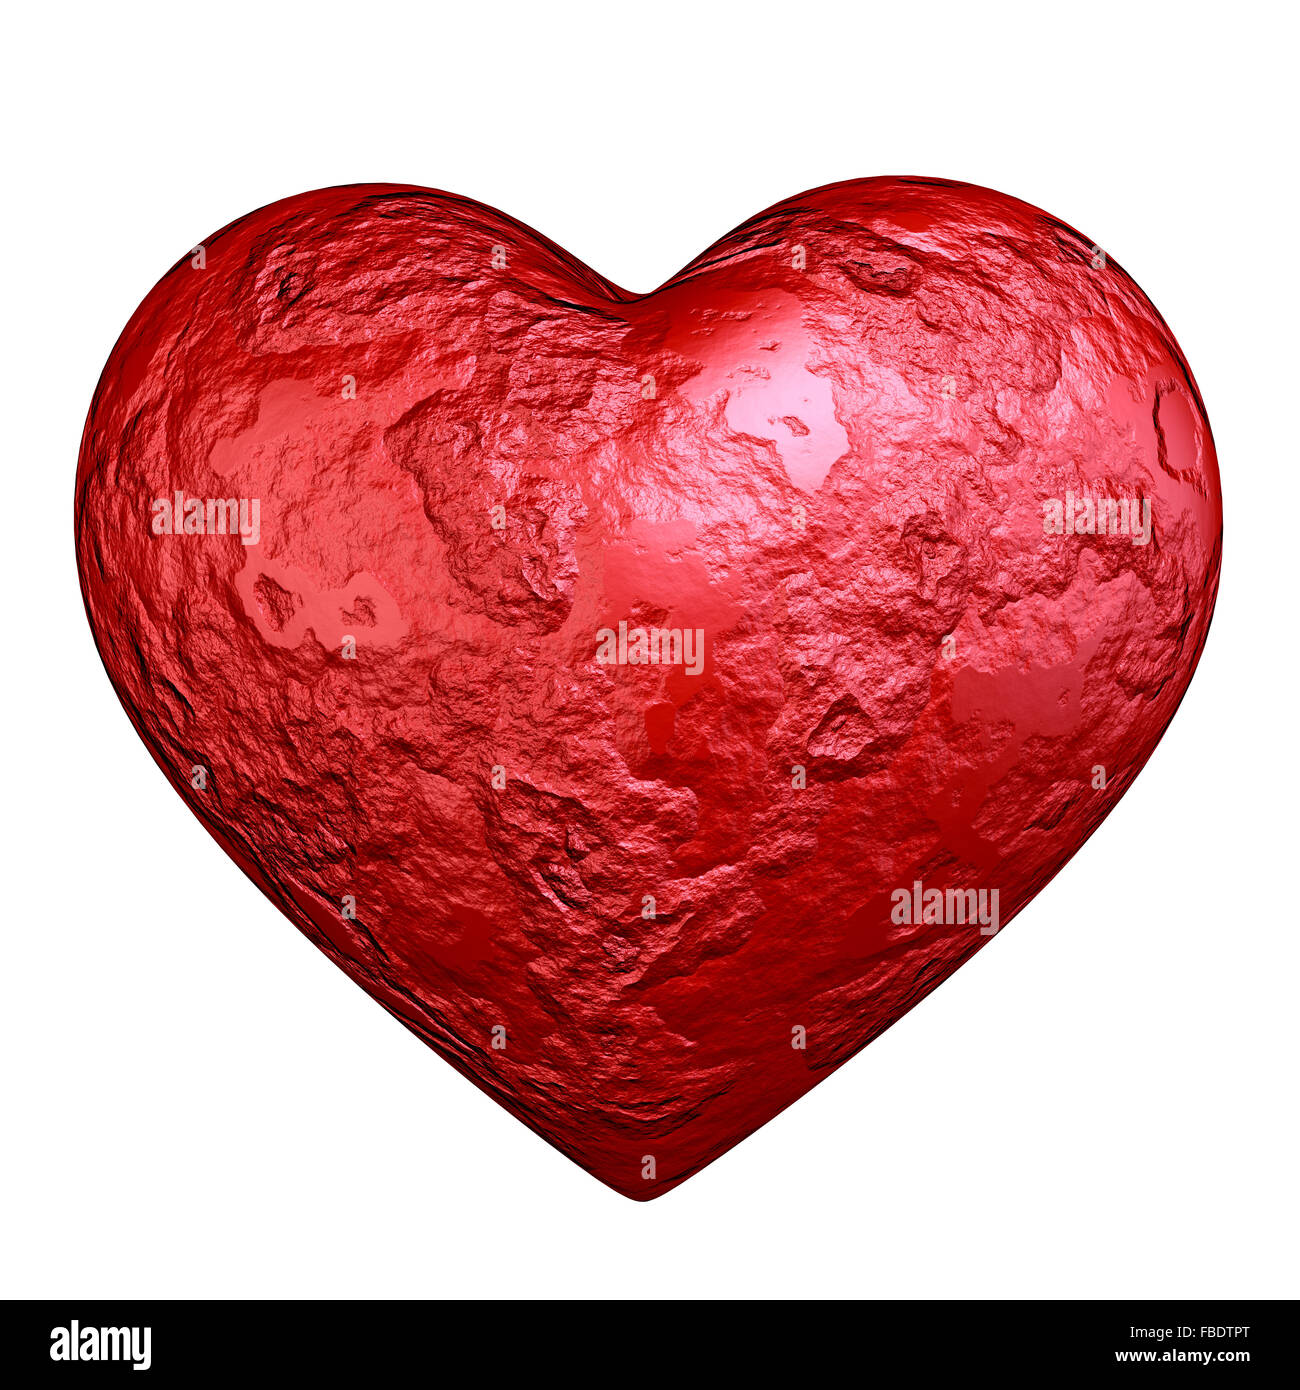 Red heart stone - Stock Image